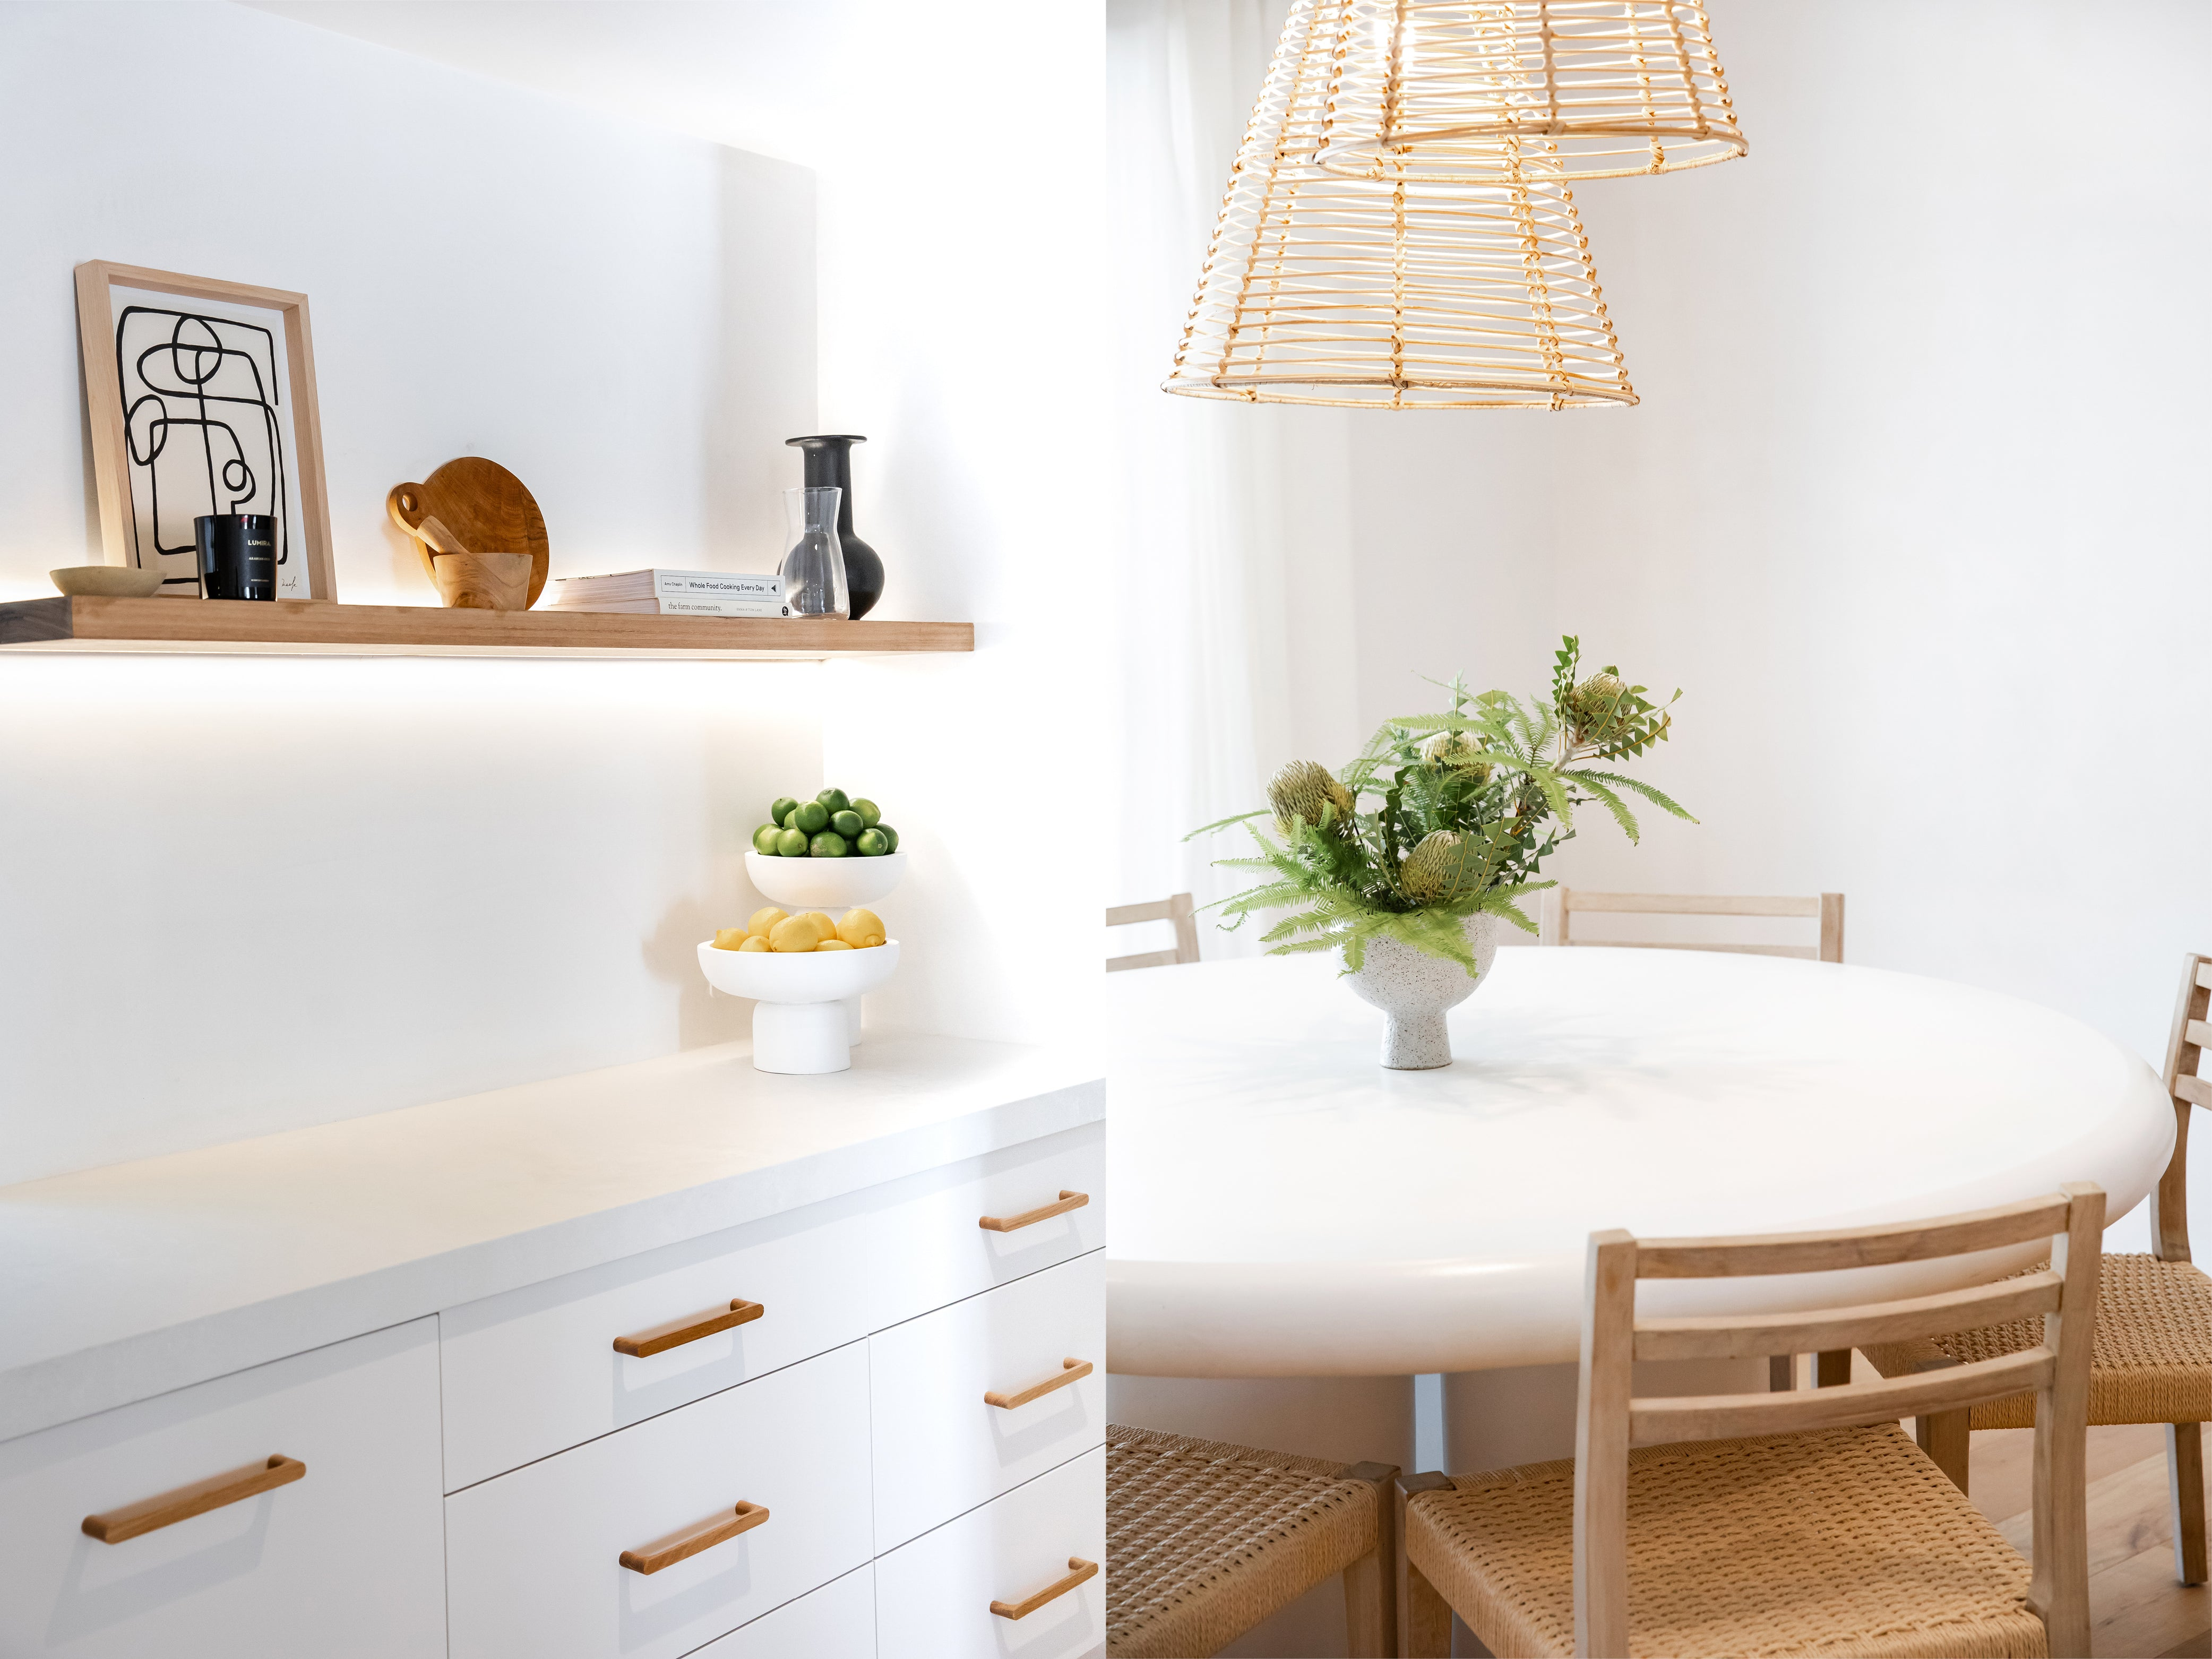 Design work done by Mel Gibbons of Avenue Twenty Two - kitchen and dining space in neutral tones